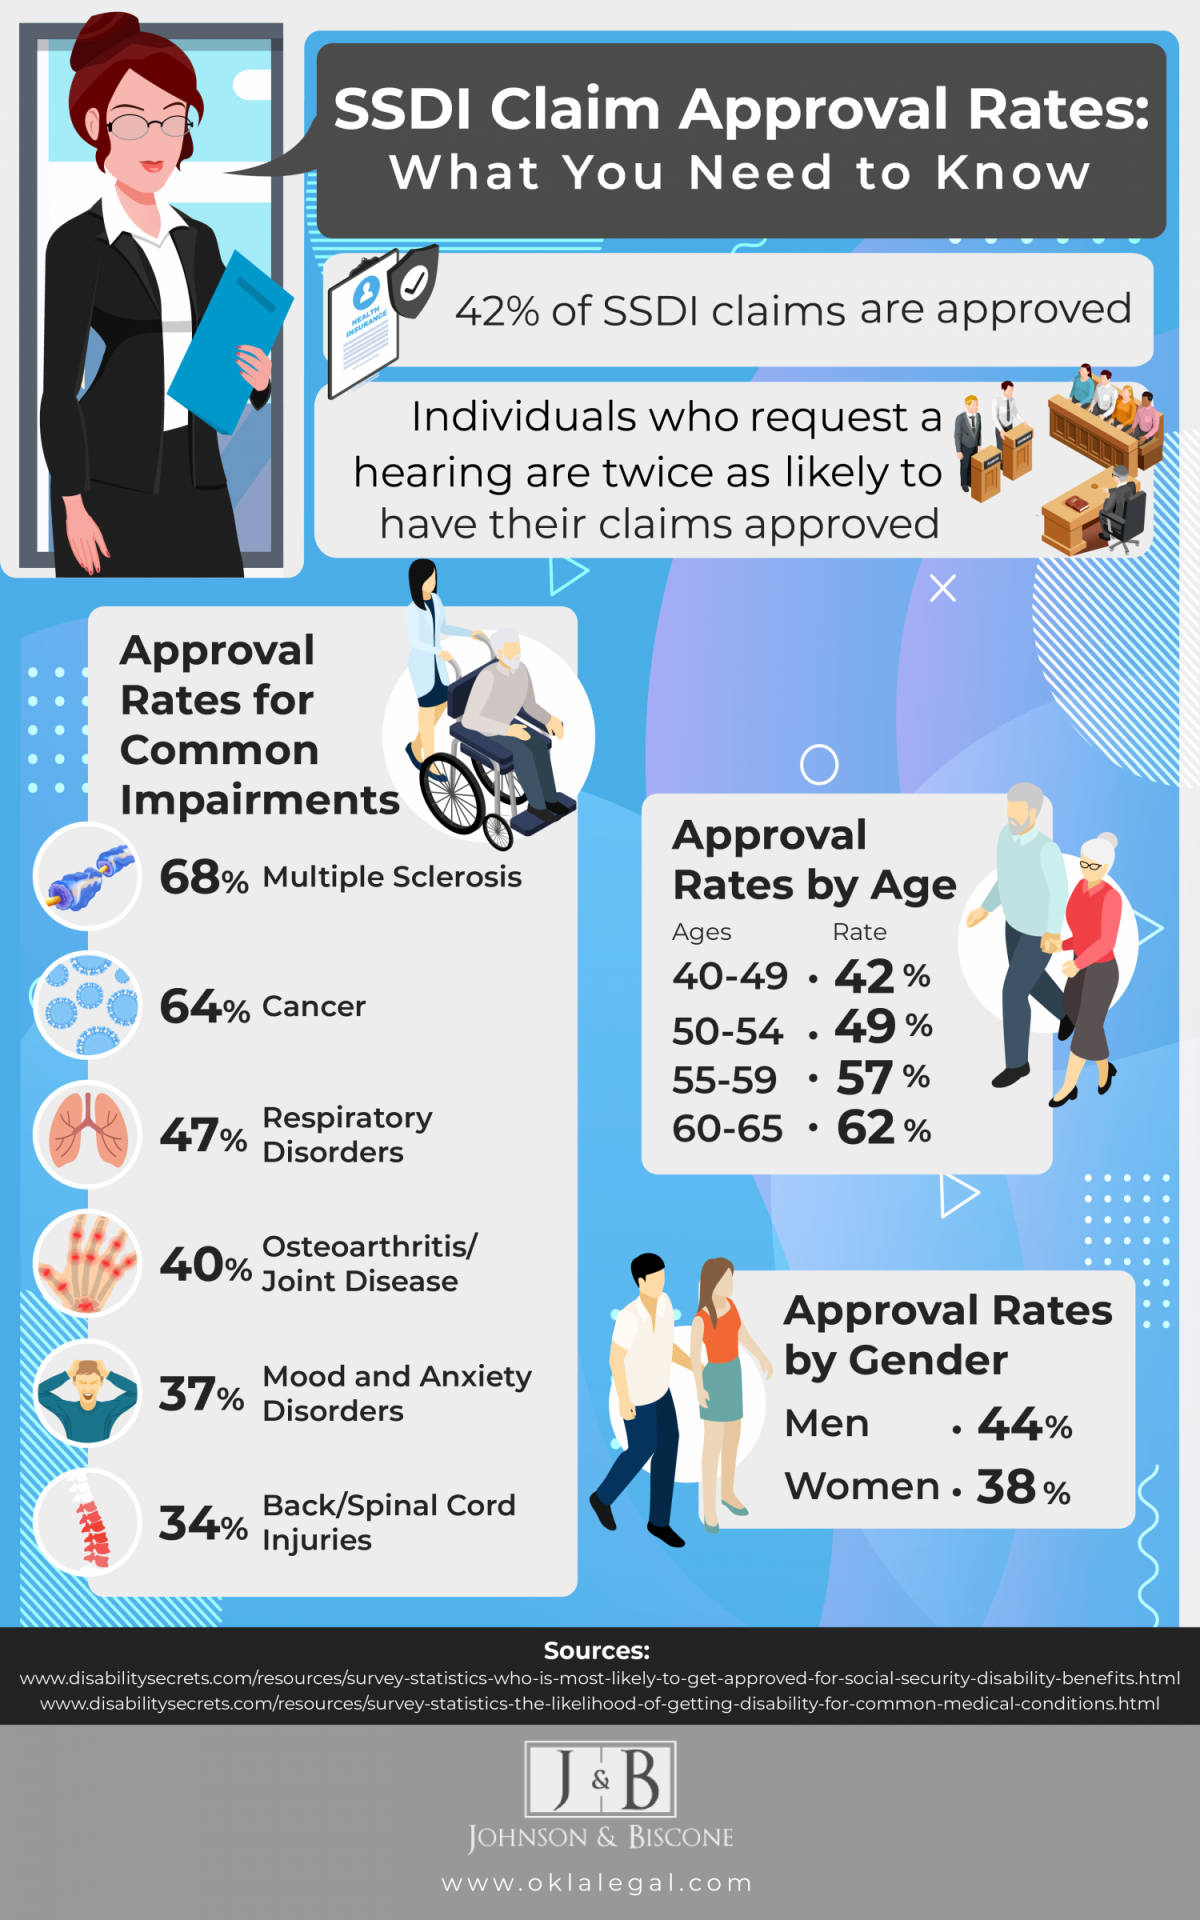 infographic highlighting approval rates for various Social Security Disability (SSDI) claims